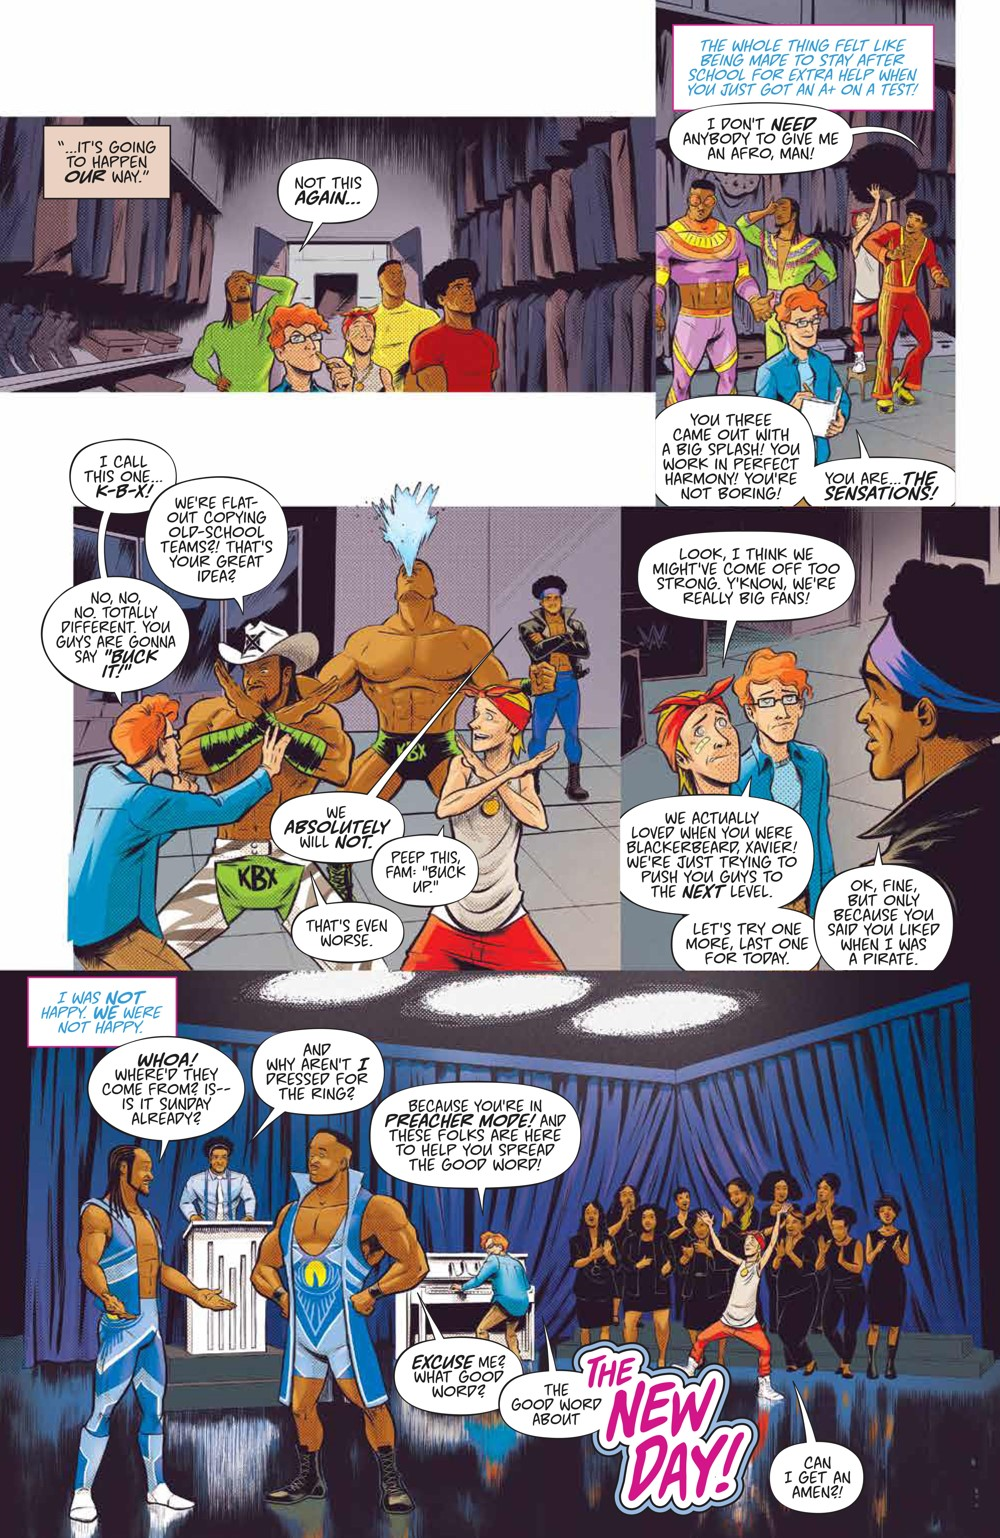 WWE_NewDay_002_PRESS_4 ComicList Previews: WWE THE NEW DAY POWER OF POSITIVITY #2 (OF 2)